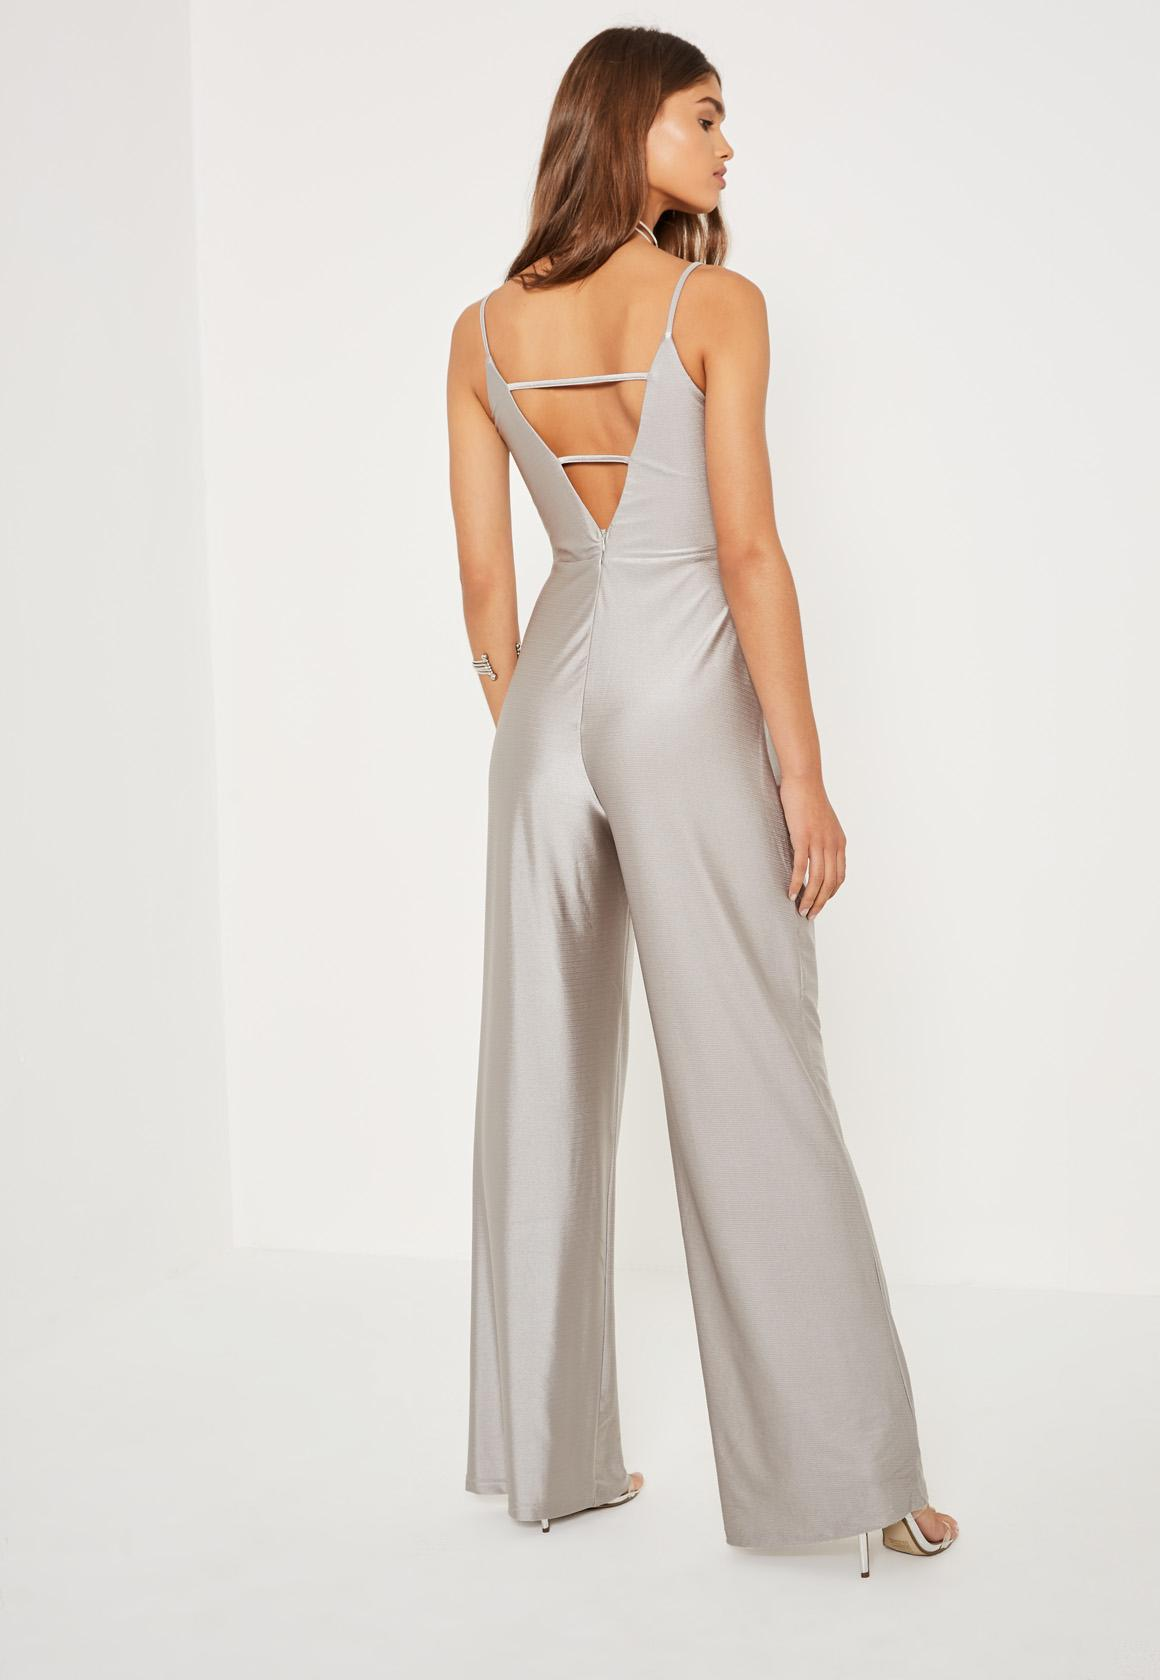 Silver Tall Exclusive Metallic Lattice Back Jumpsuit - Missguided